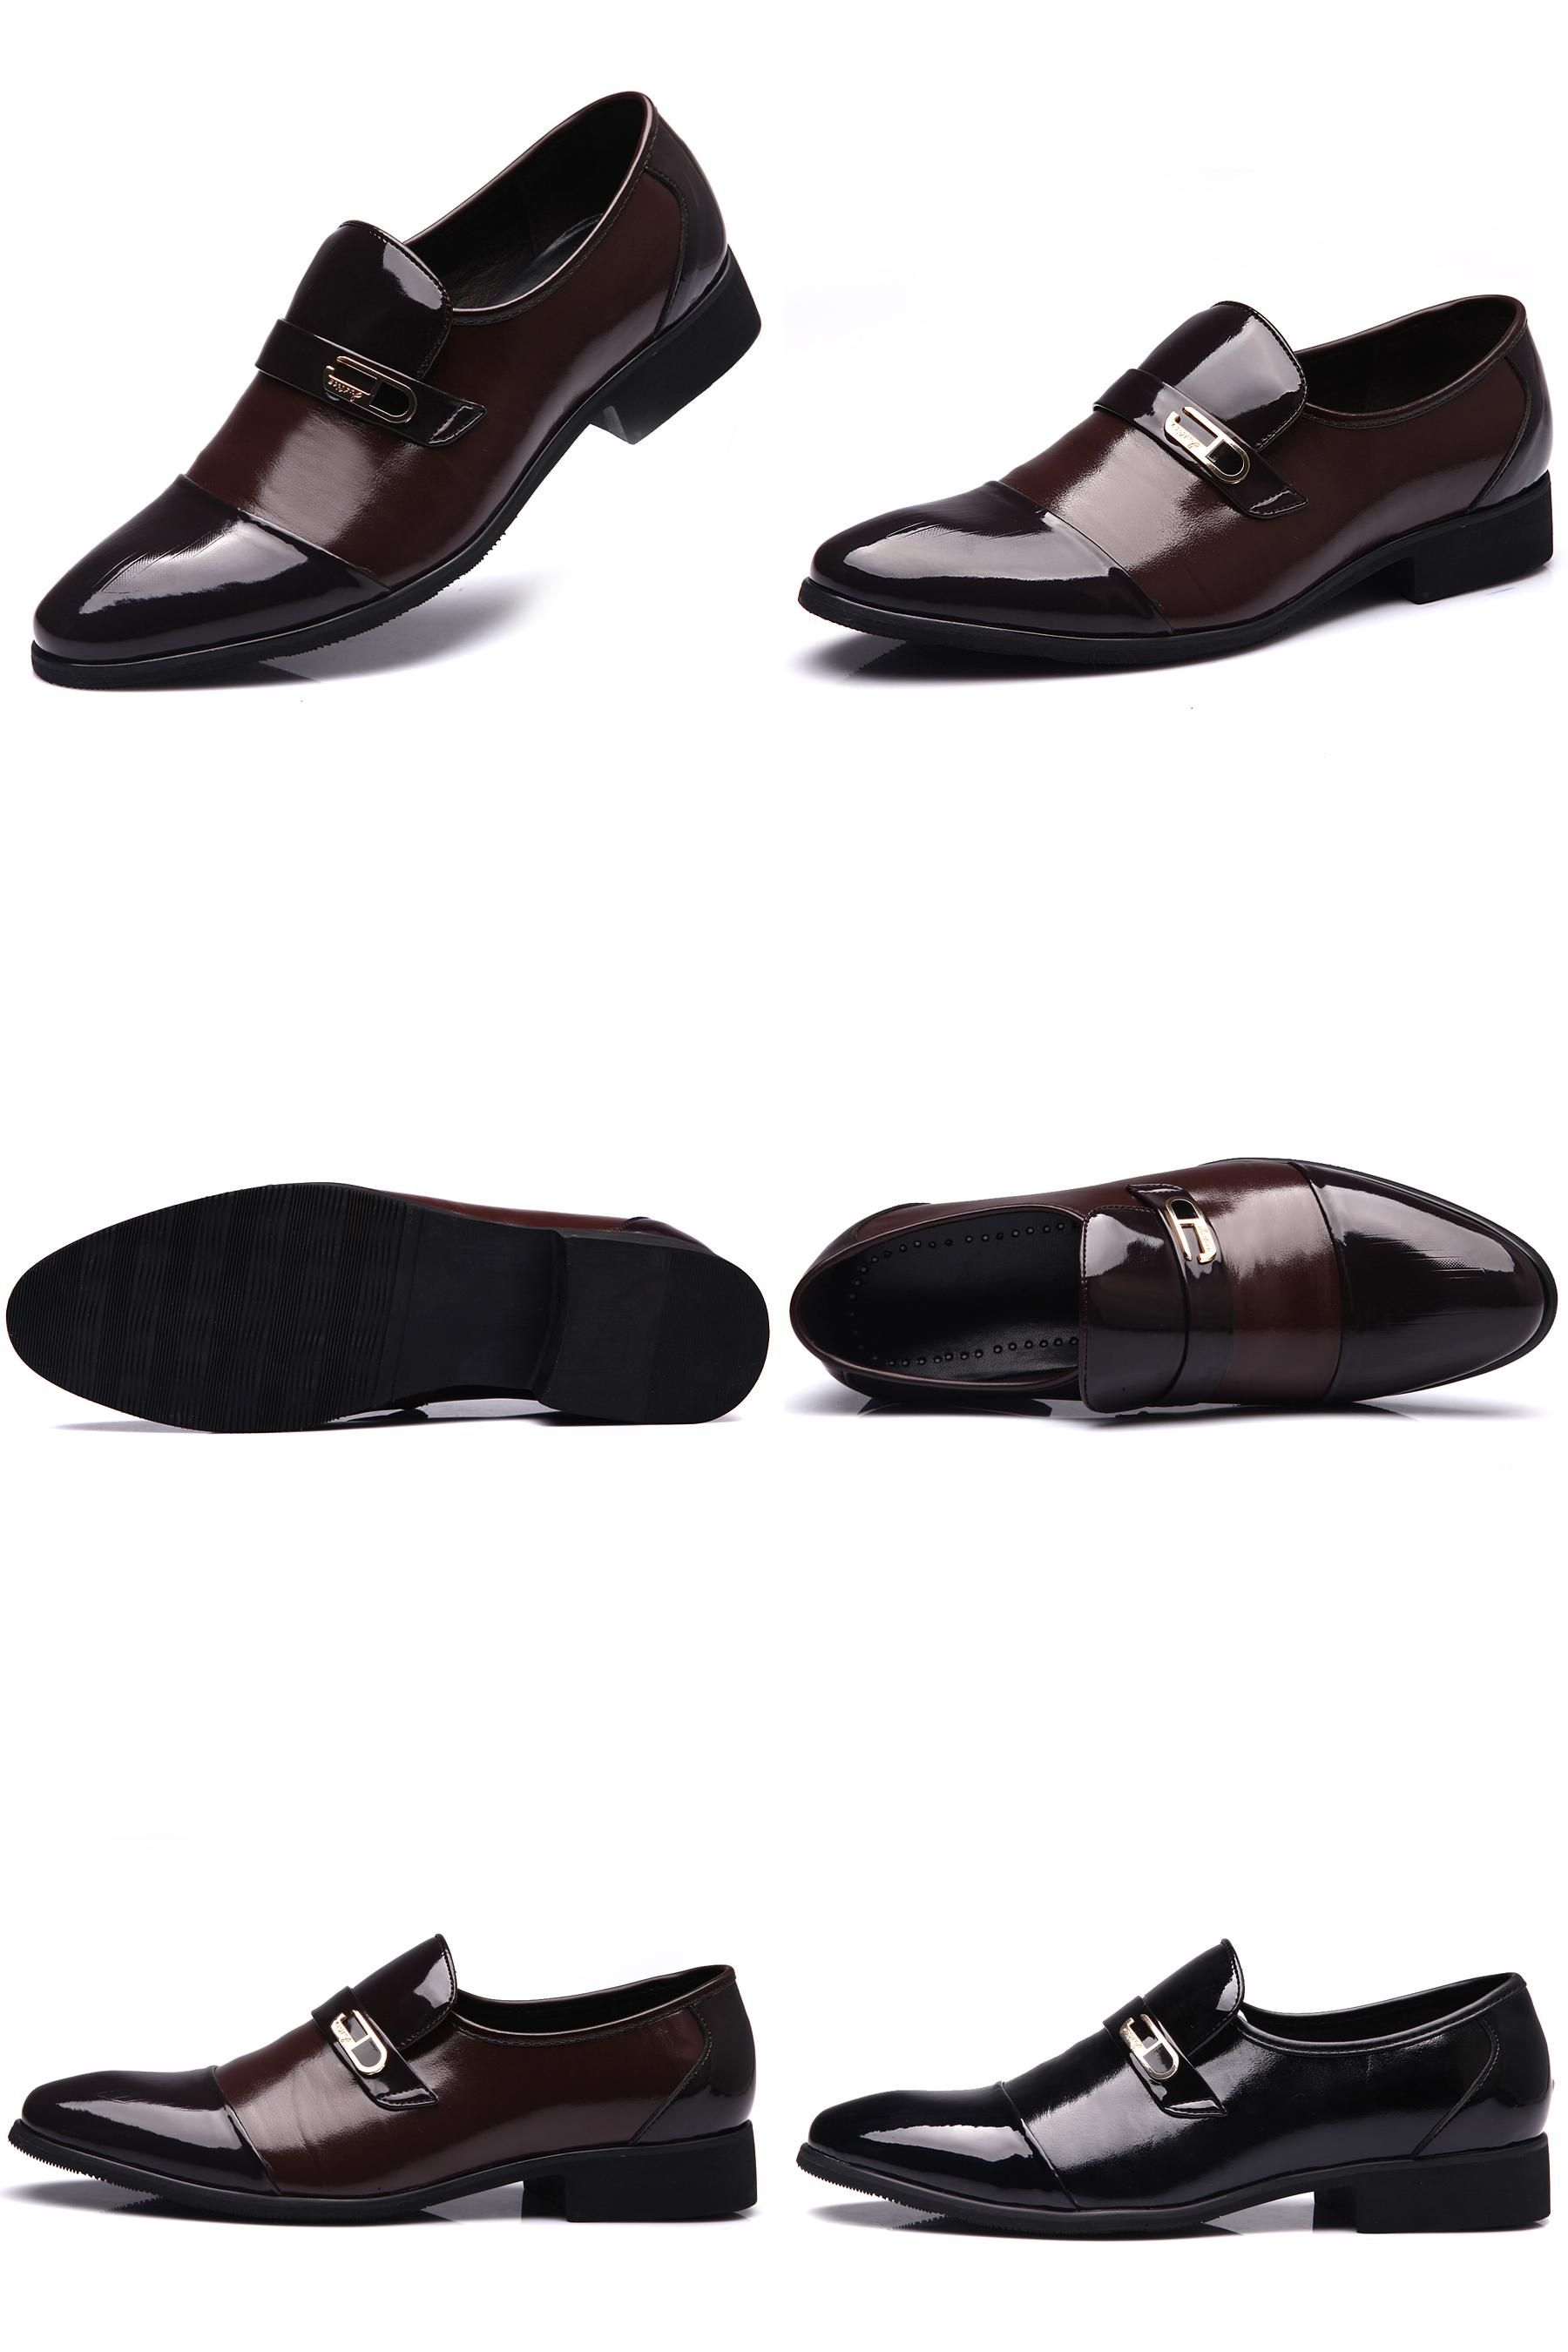 38223953915d0f  Visit to Buy  Vintage Genuine Leather Men Business Shoes Derby Black  Patent Leather Pointed